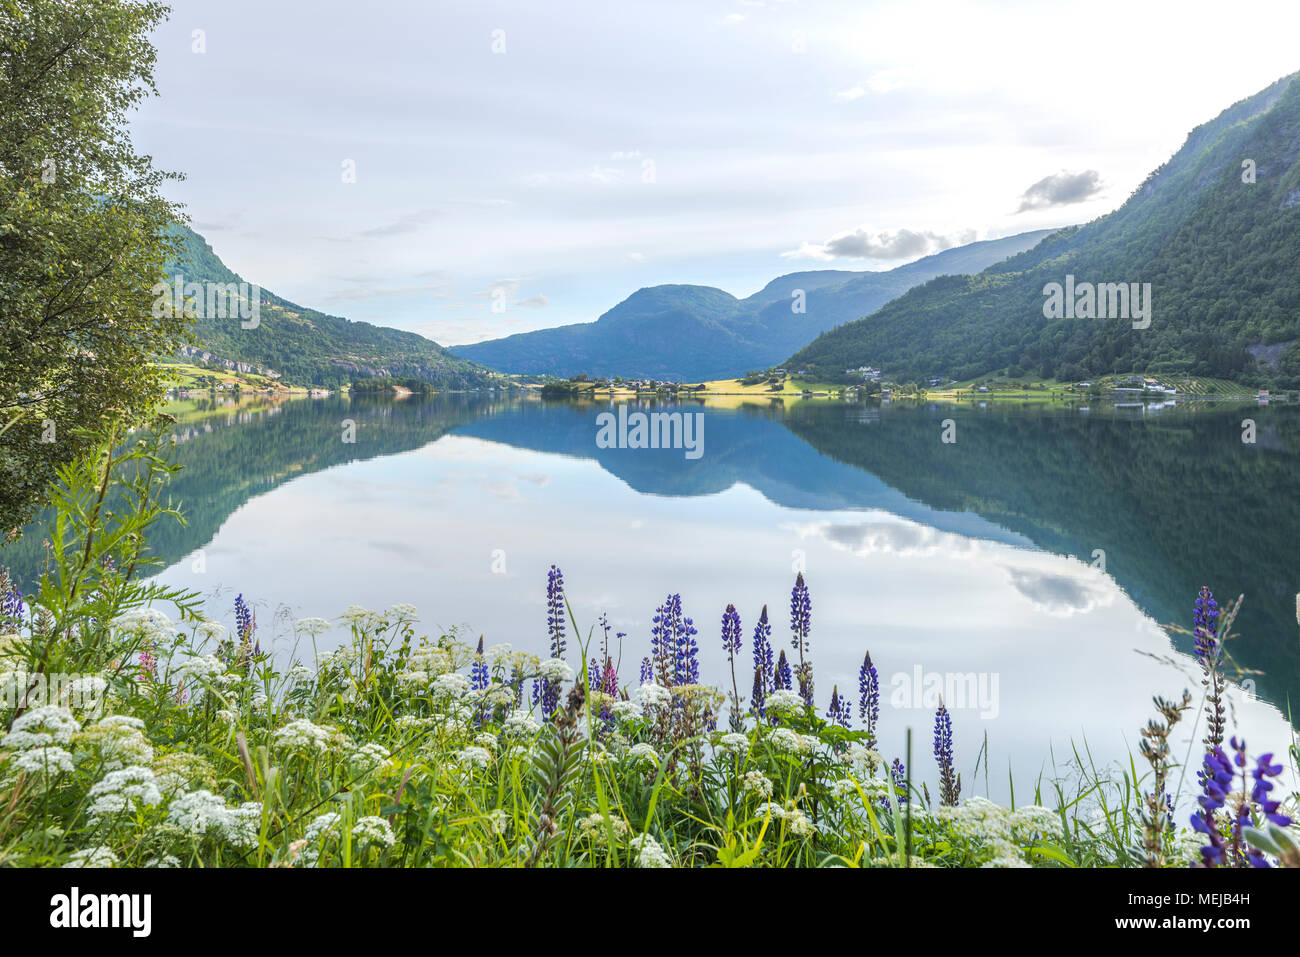 Barsnesfjorden with colourful lupins, Norway, idyllic fjord landscape with bloomy flowers at the shore and mirroring water surface - Stock Image